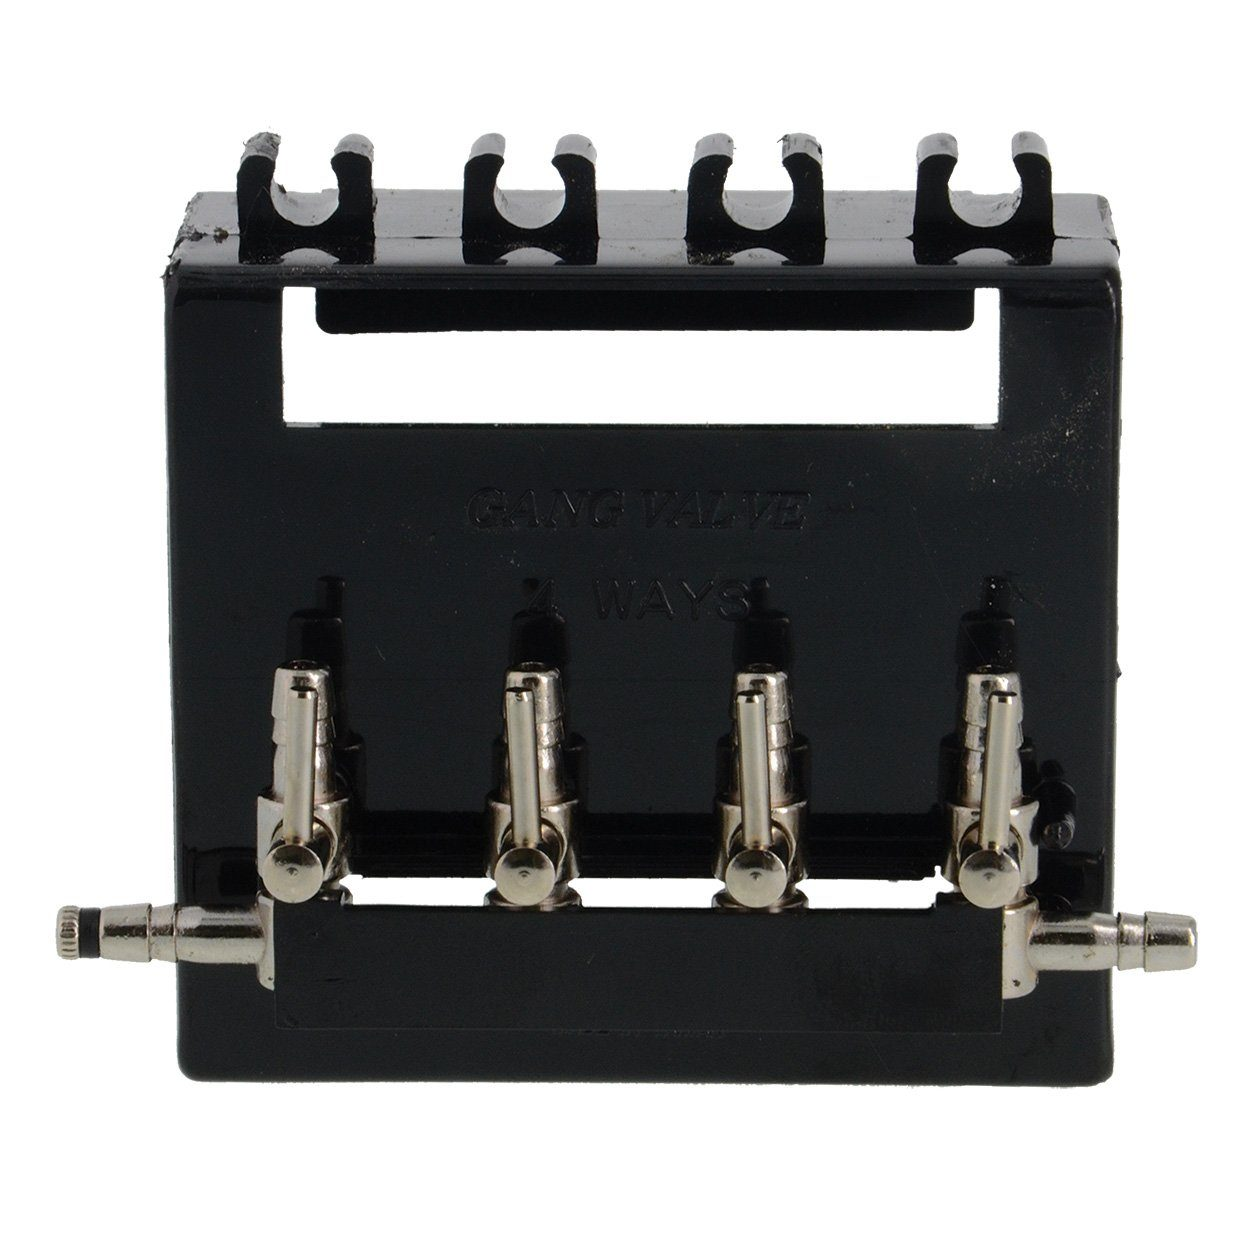 Metal Air Gang Valves (2-3-4-5 Way)